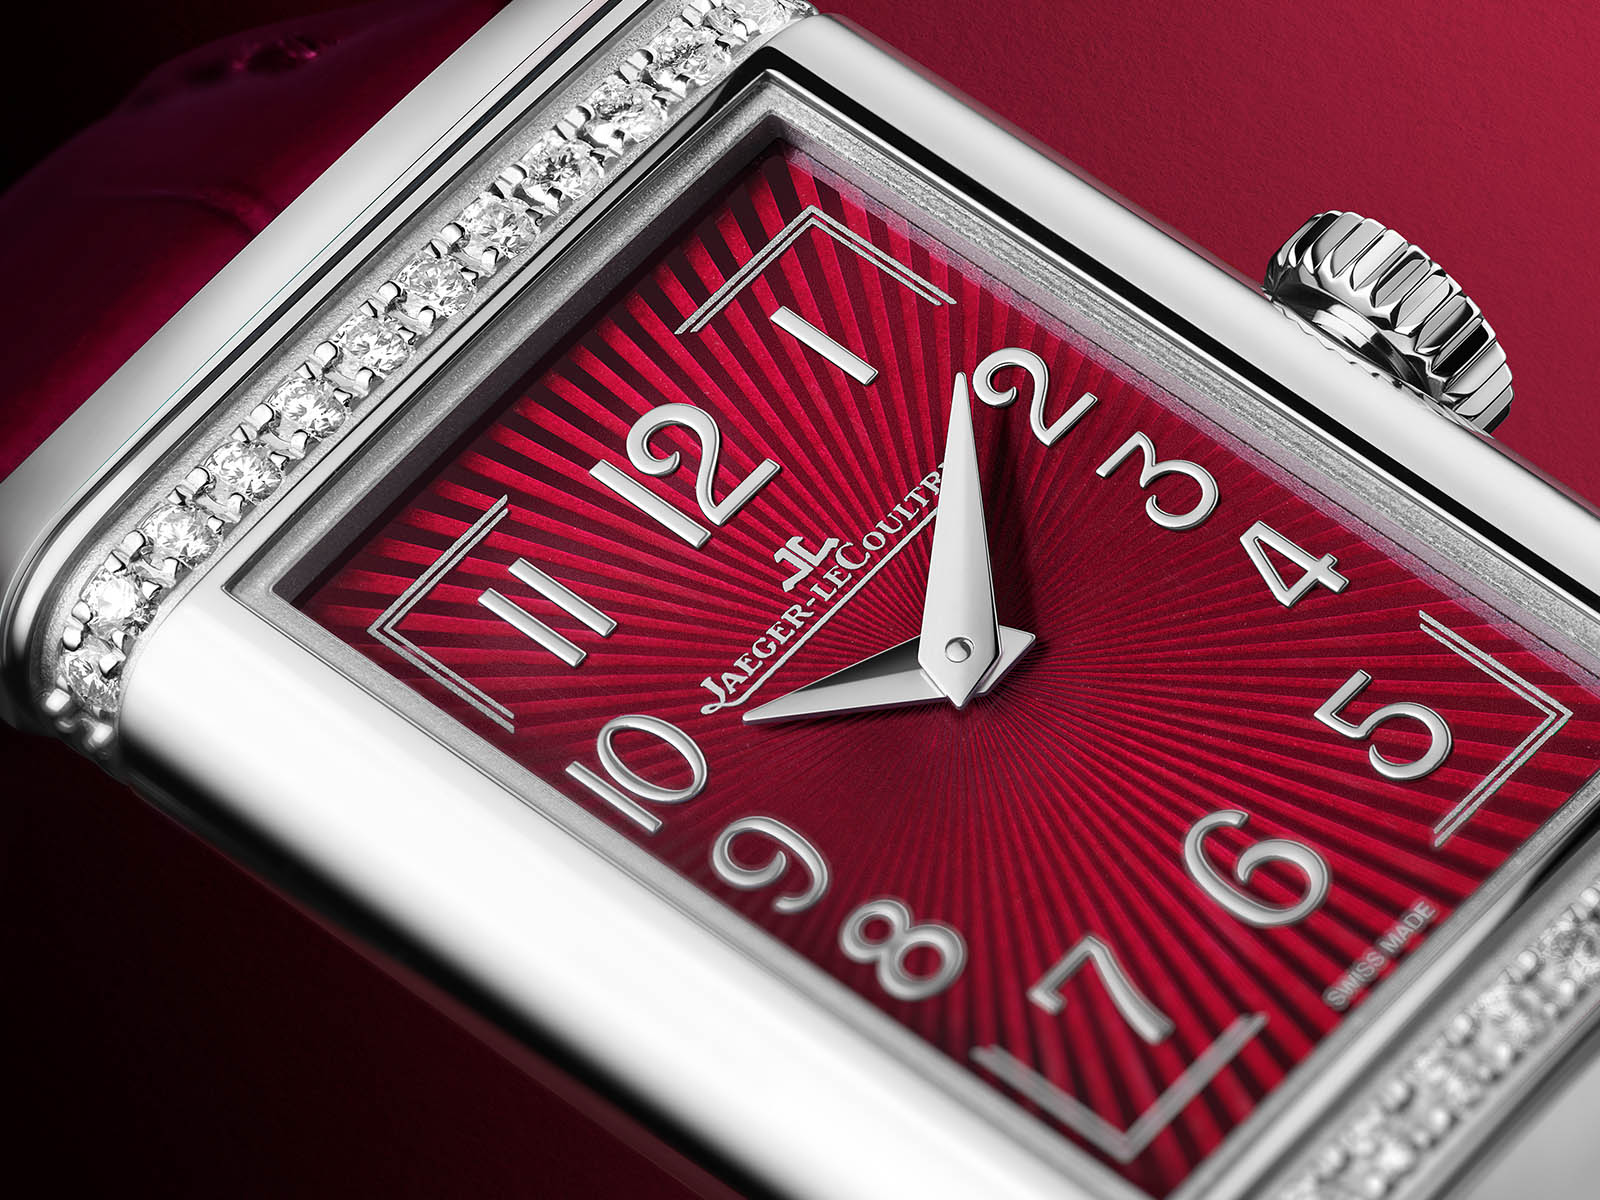 q3288560-jaeger-lecoultre-reverso-one-red-wine-3.jpg